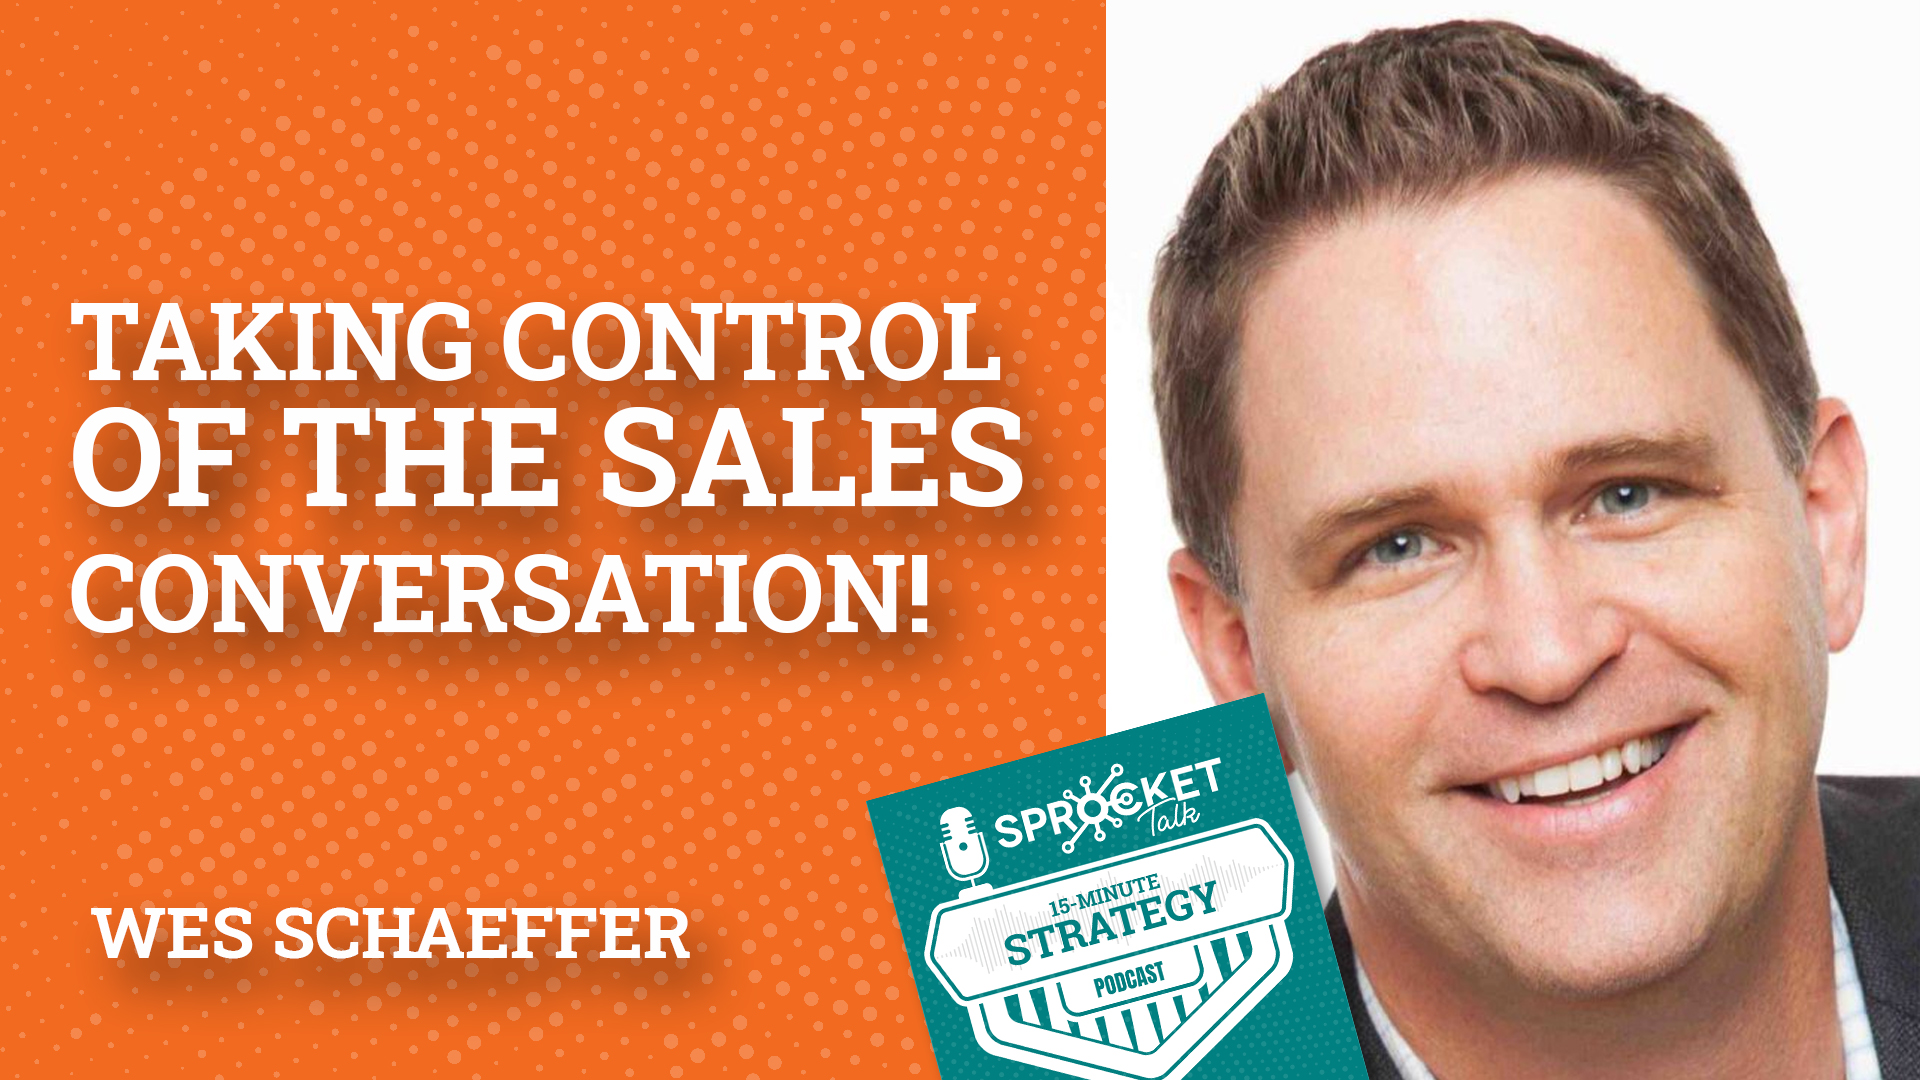 Wes Schaeffer: Taking Control of the Sales Conversation